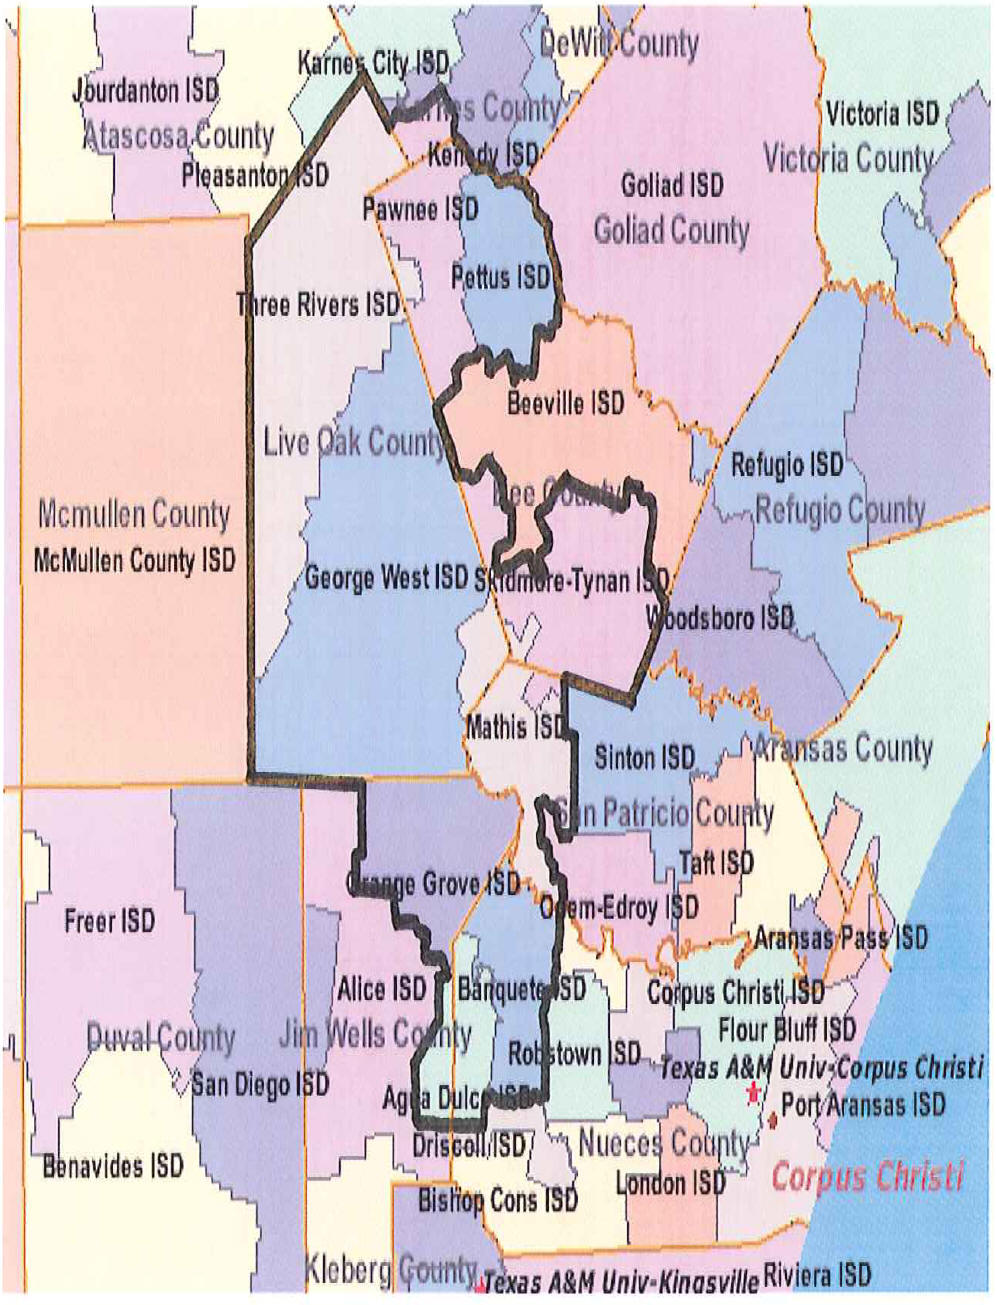 BCC Map Map Of Pawnee Isd on map of del city, map of jenks, map of kincaid, map of the shoshone, map of timucua, map of cahuilla, map of inola, map of skidmore, map of fossil ridge, map of springfield township, map of pauls valley, map of ohlone, map of athabascan, map of snyder, map of carter, map of mangum, map of lenape, map of hitchcock, map of watonga, map of liberal,